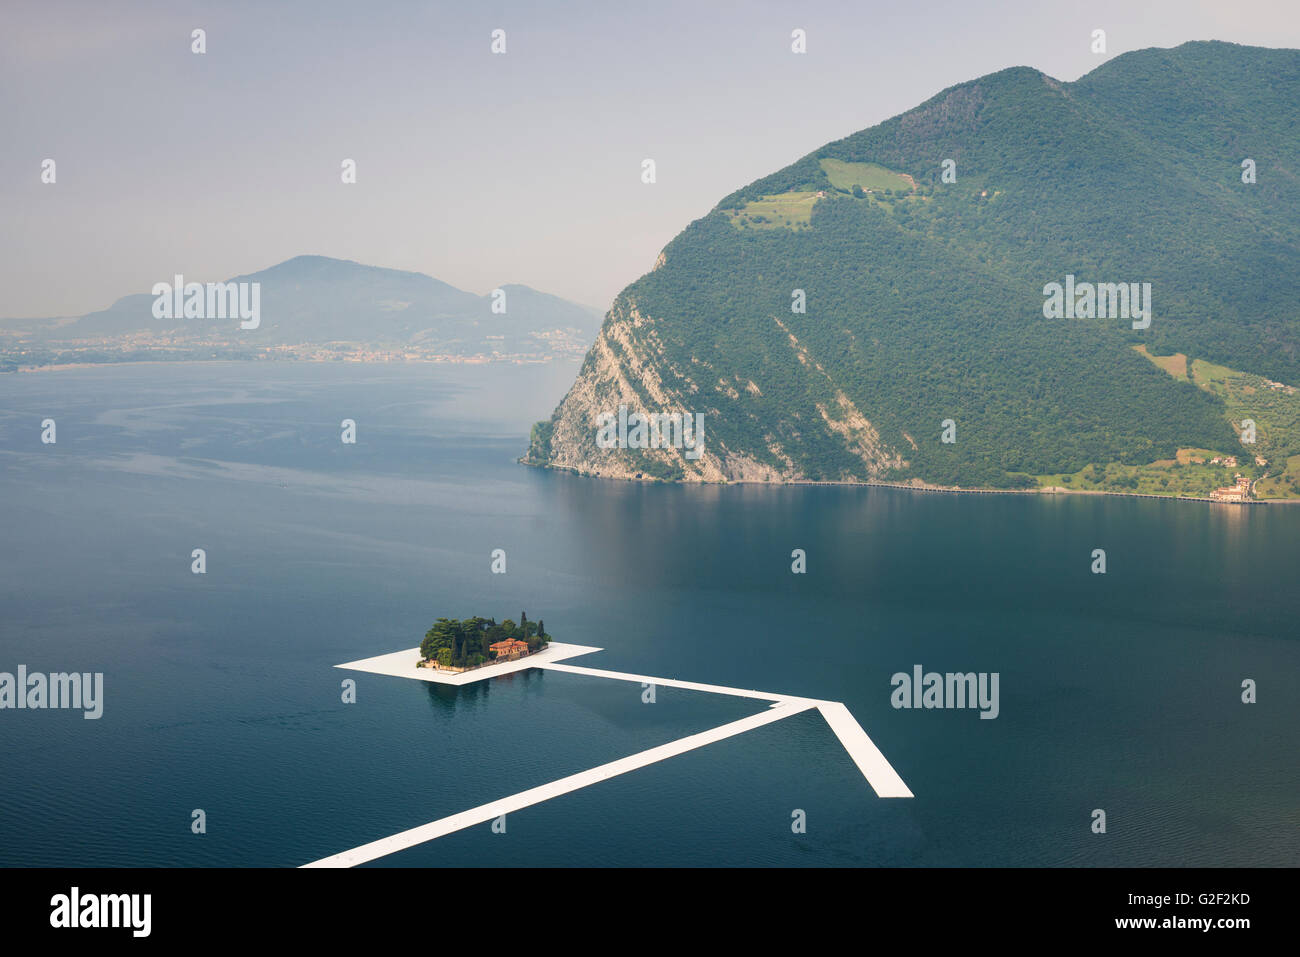 Swimming pontons form a giant arrow at Saint Paul island for Christo's project 'The floating piers' - Stock Image